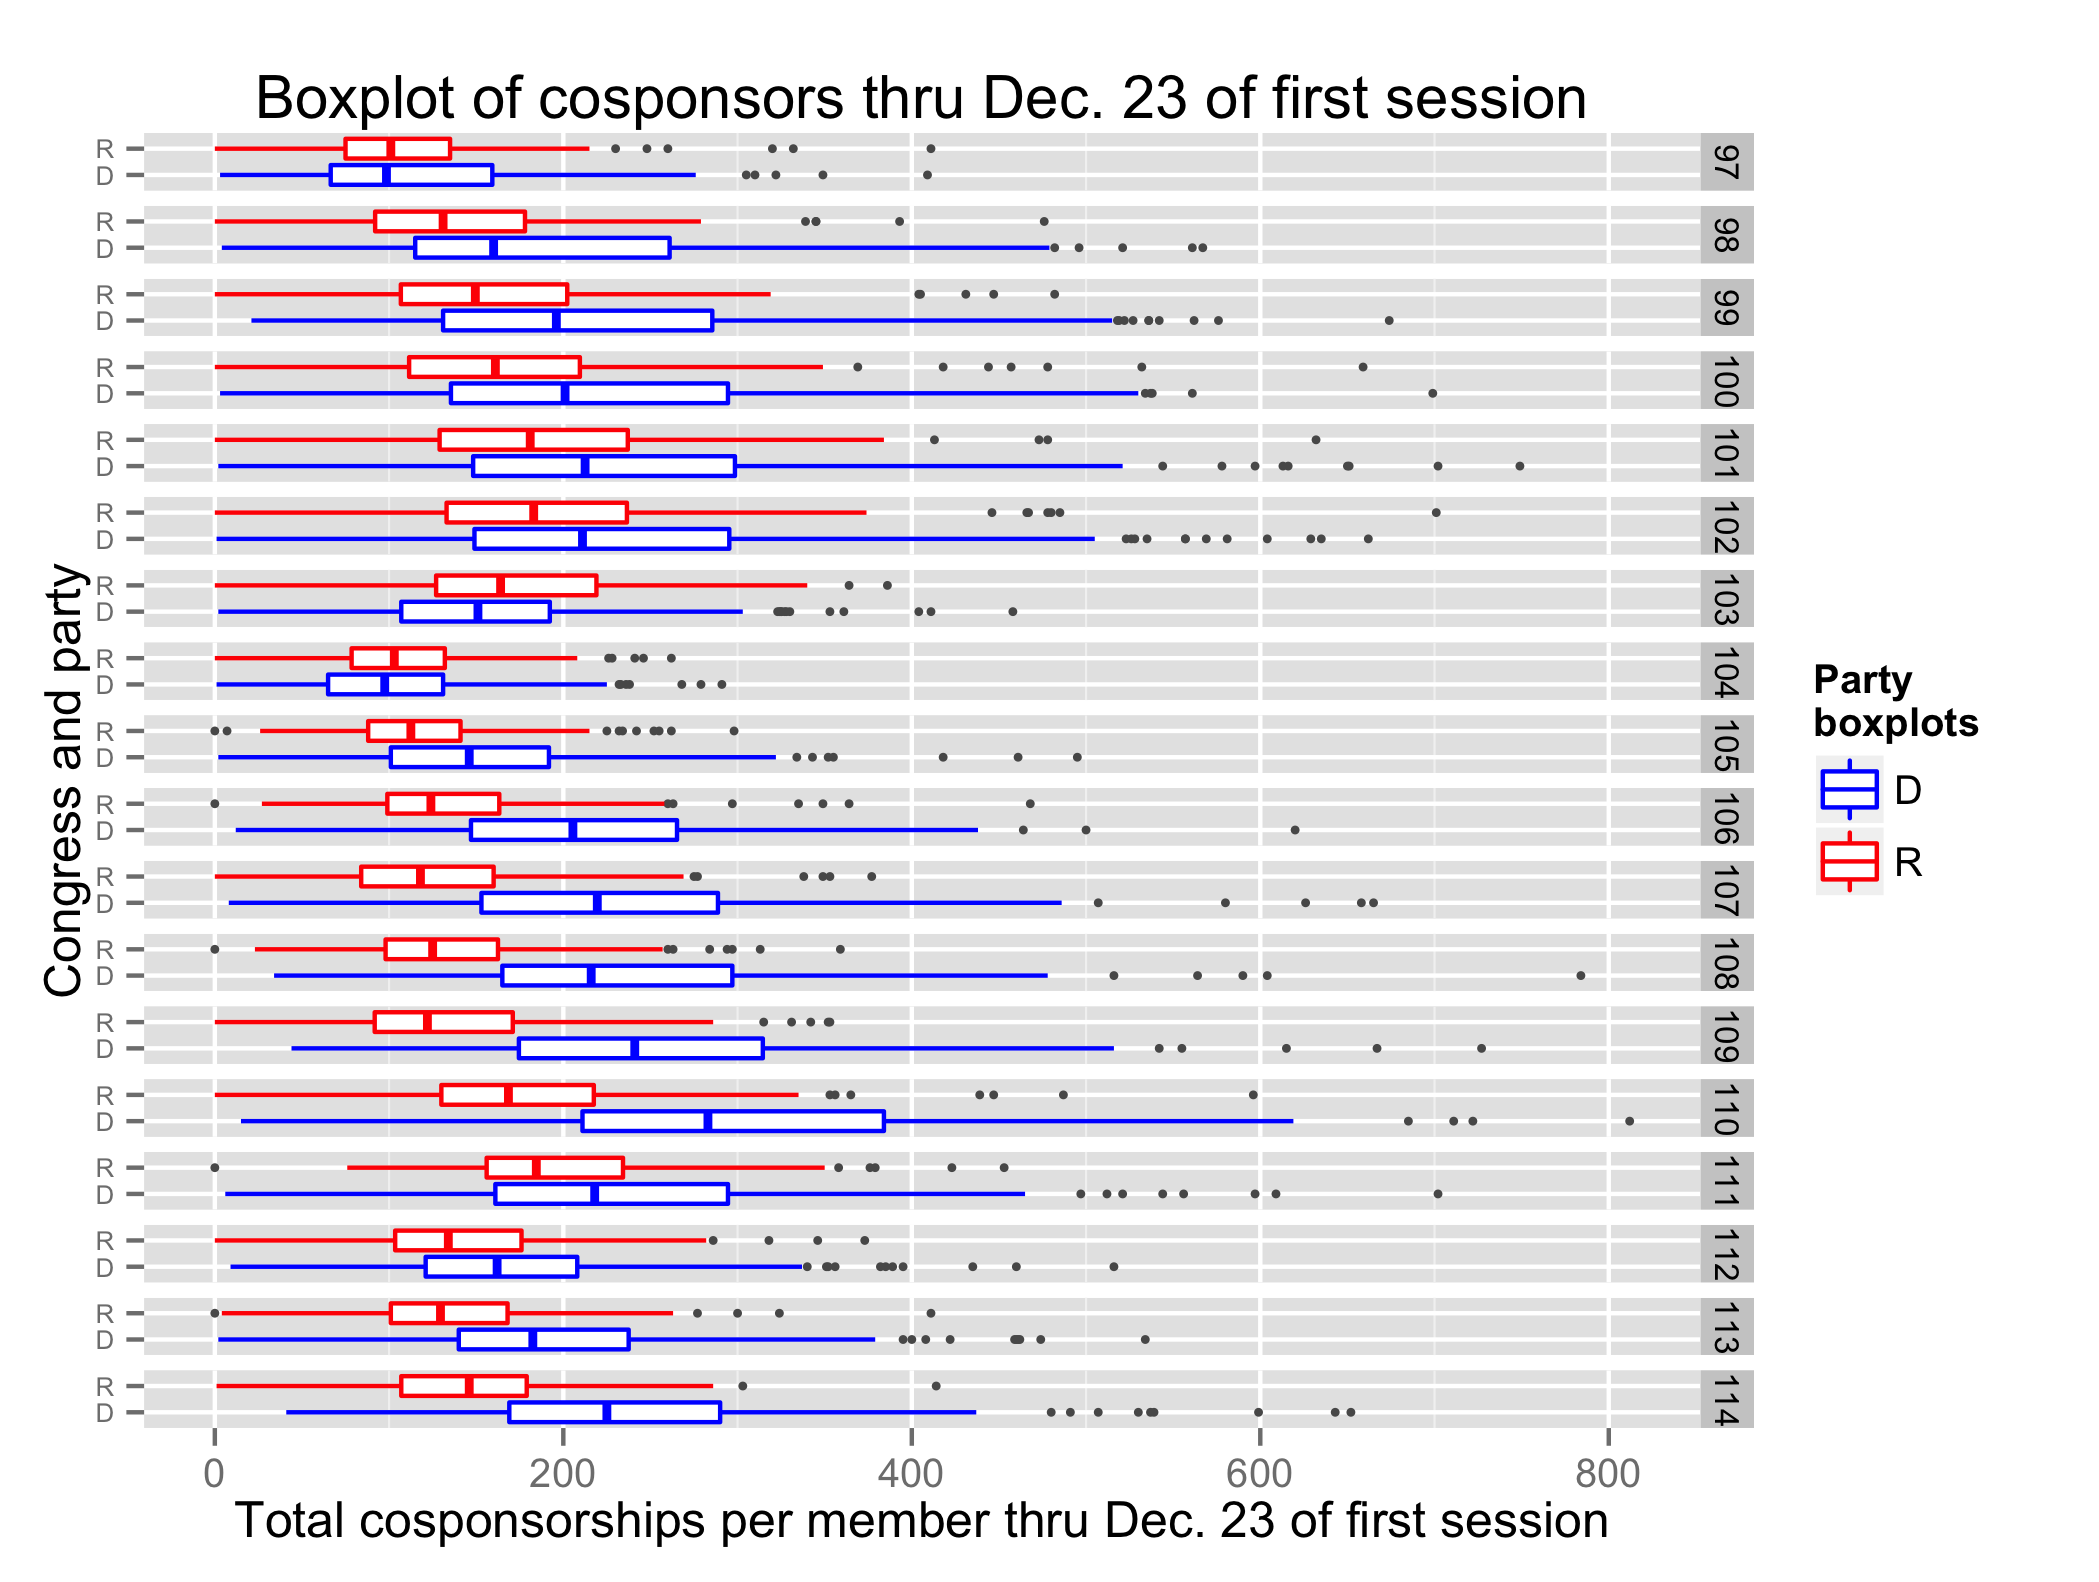 Boxplot of cosponsors by congress and party through Dec. 23 of the first session of each congress